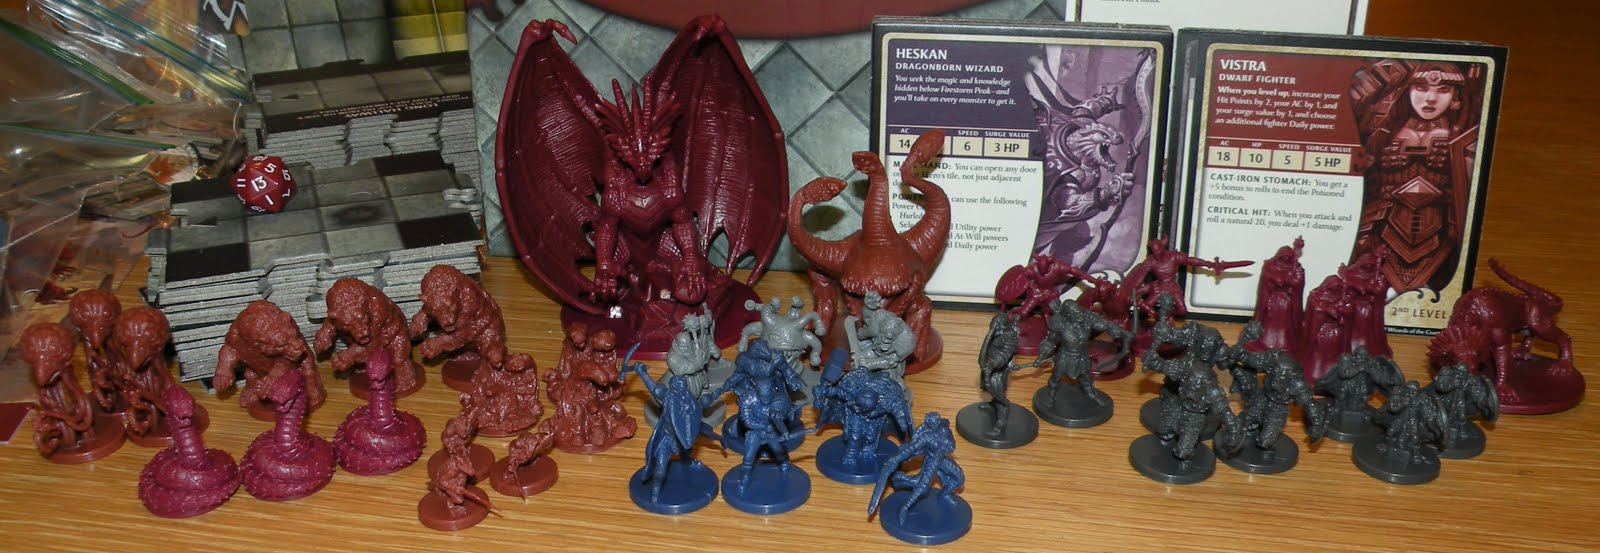 Sons Of Twilight Wrath Of Ashardalon D D Boardgame Review